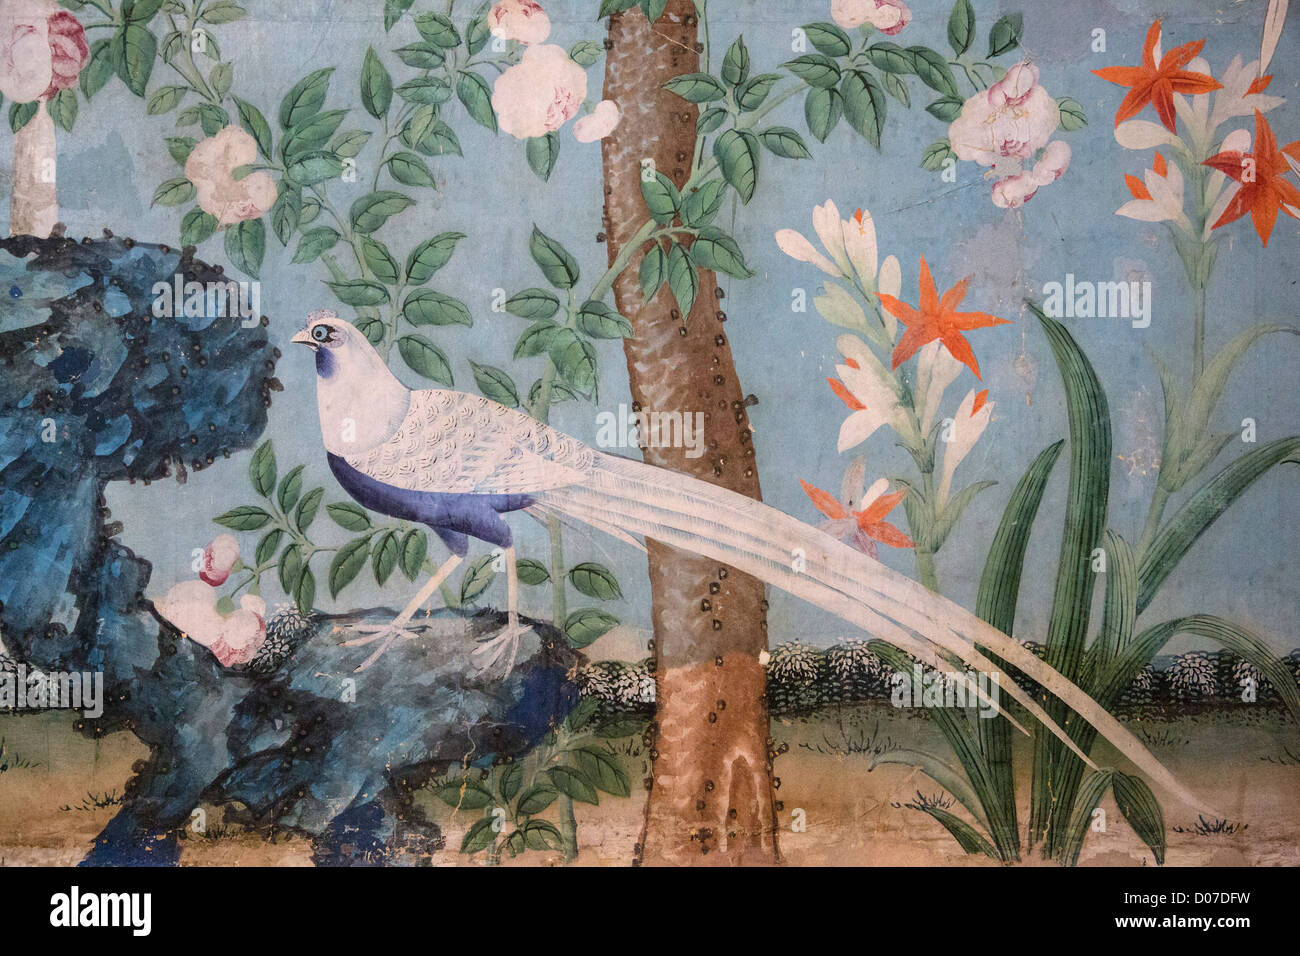 18th century wallpaper crivelli - photo #32